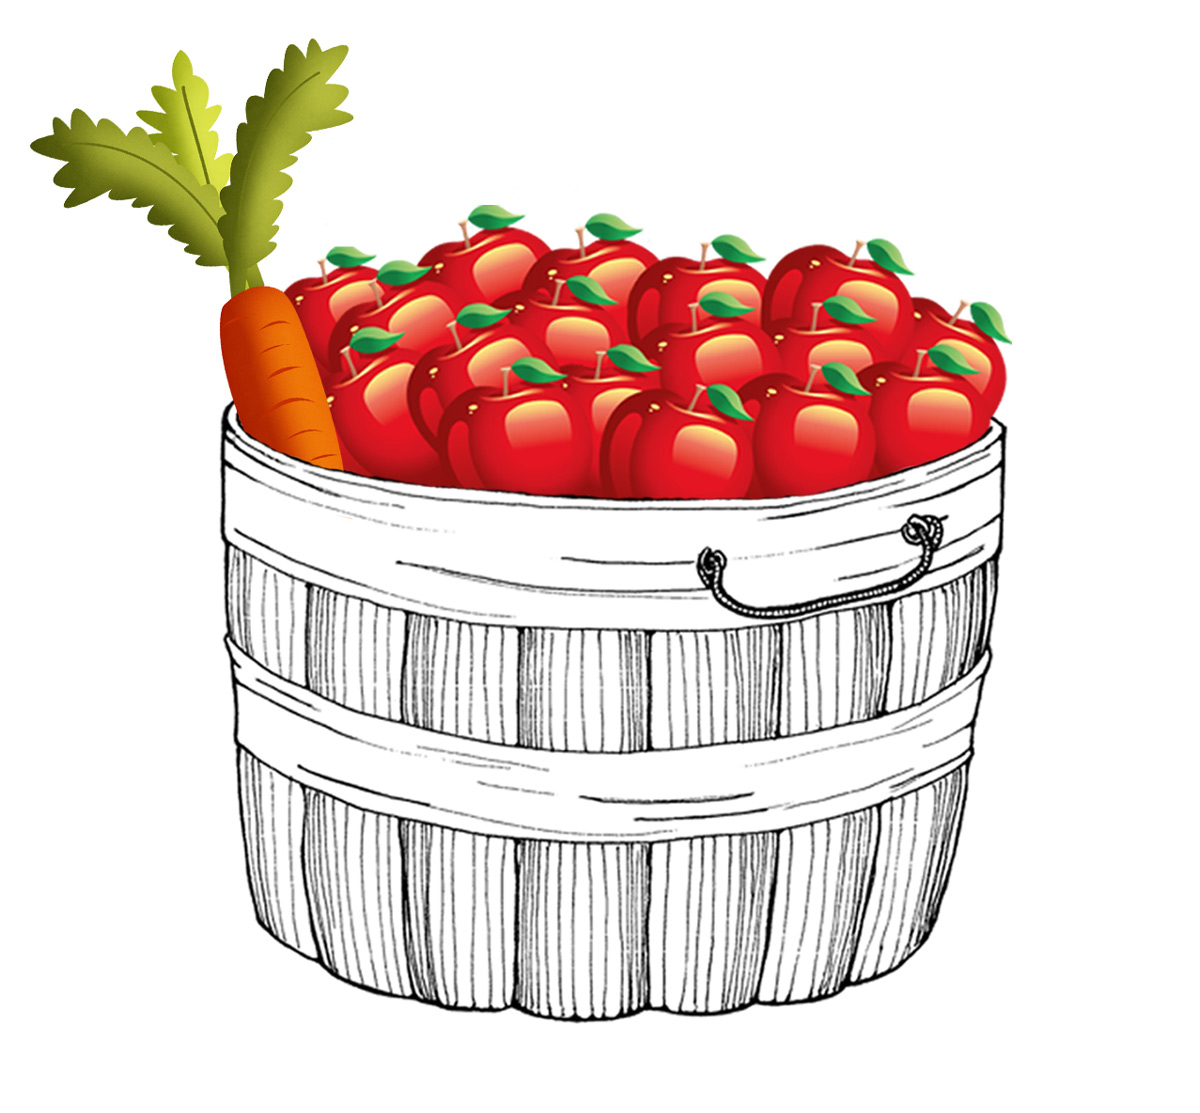 Bushel basket full of apples and one carrot.